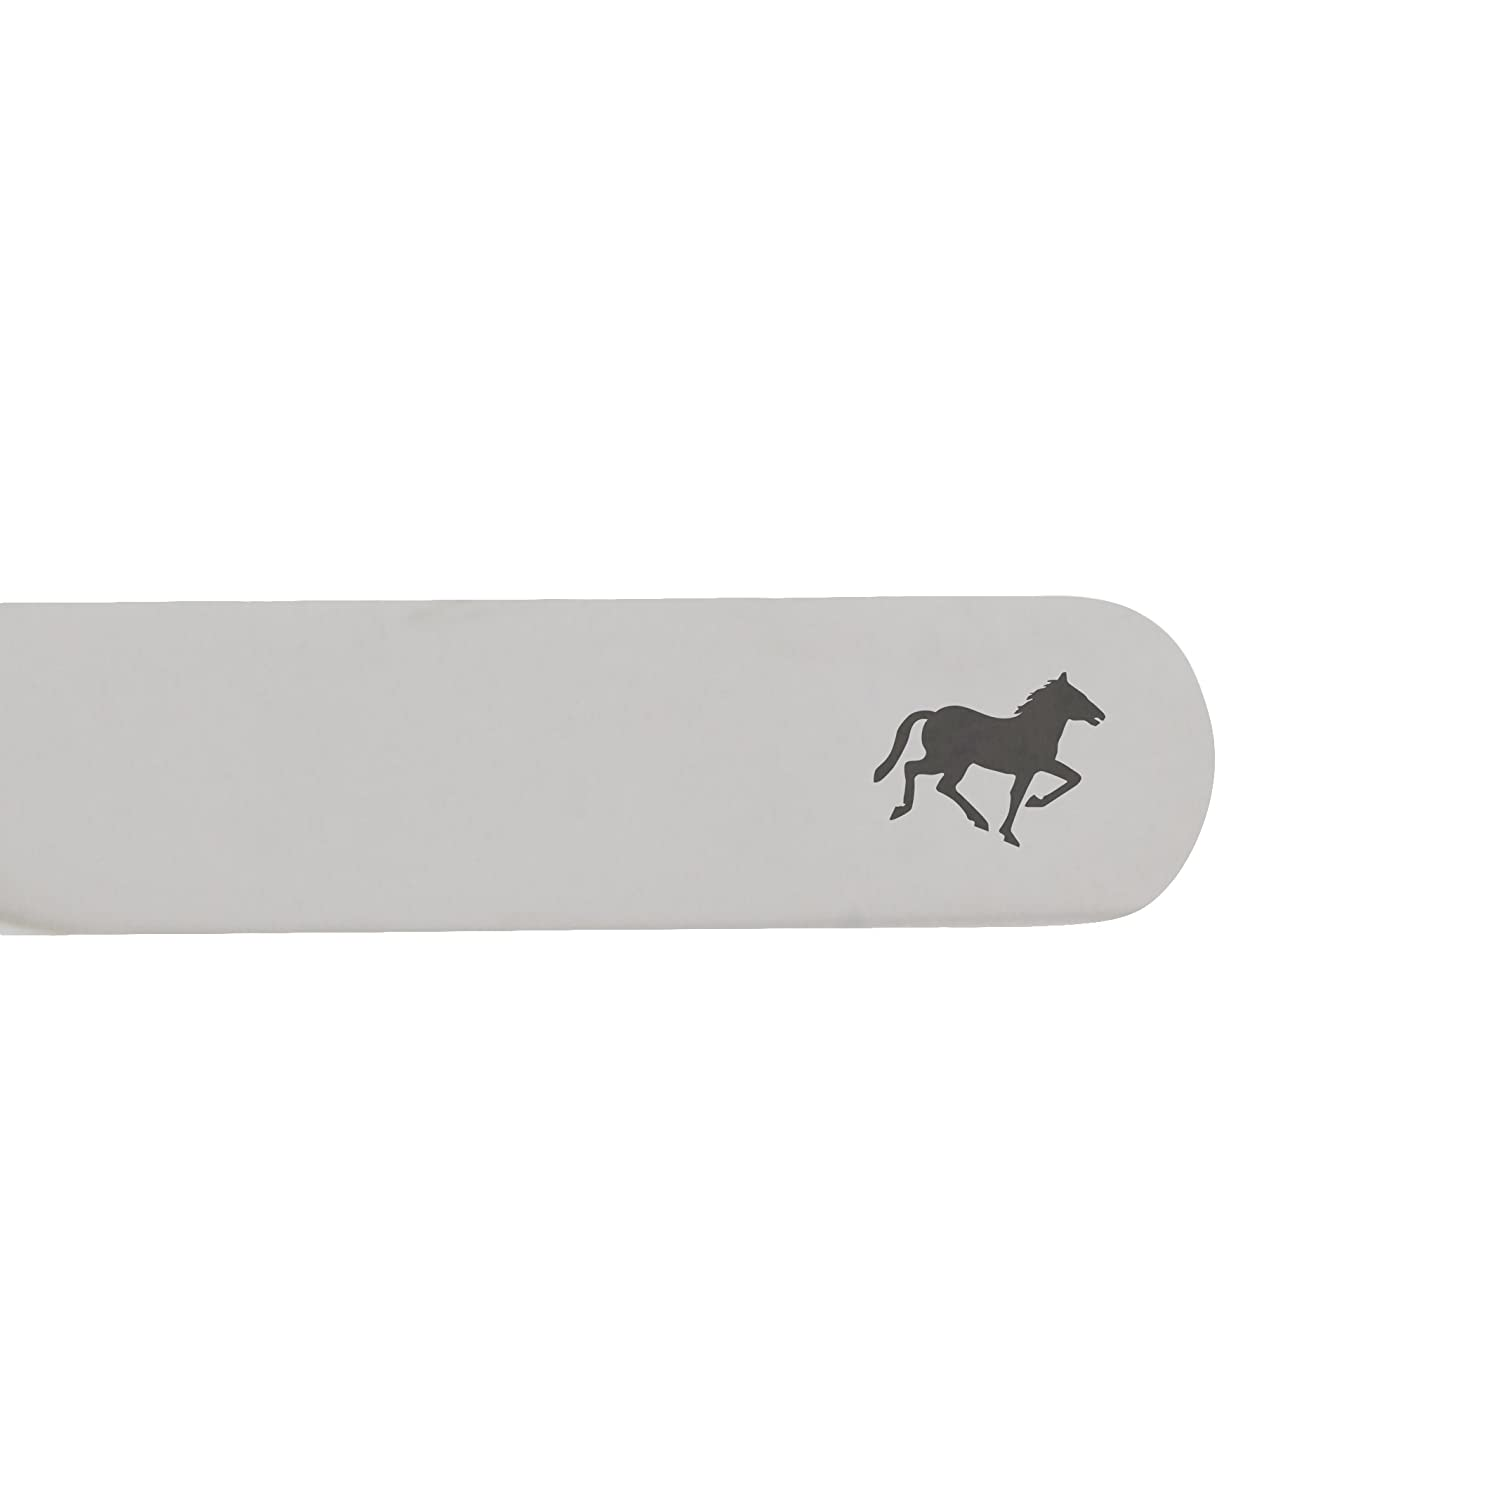 Made In USA MODERN GOODS SHOP Stainless Steel Collar Stays With Laser Engraved Horse Design 2.5 Inch Metal Collar Stiffeners